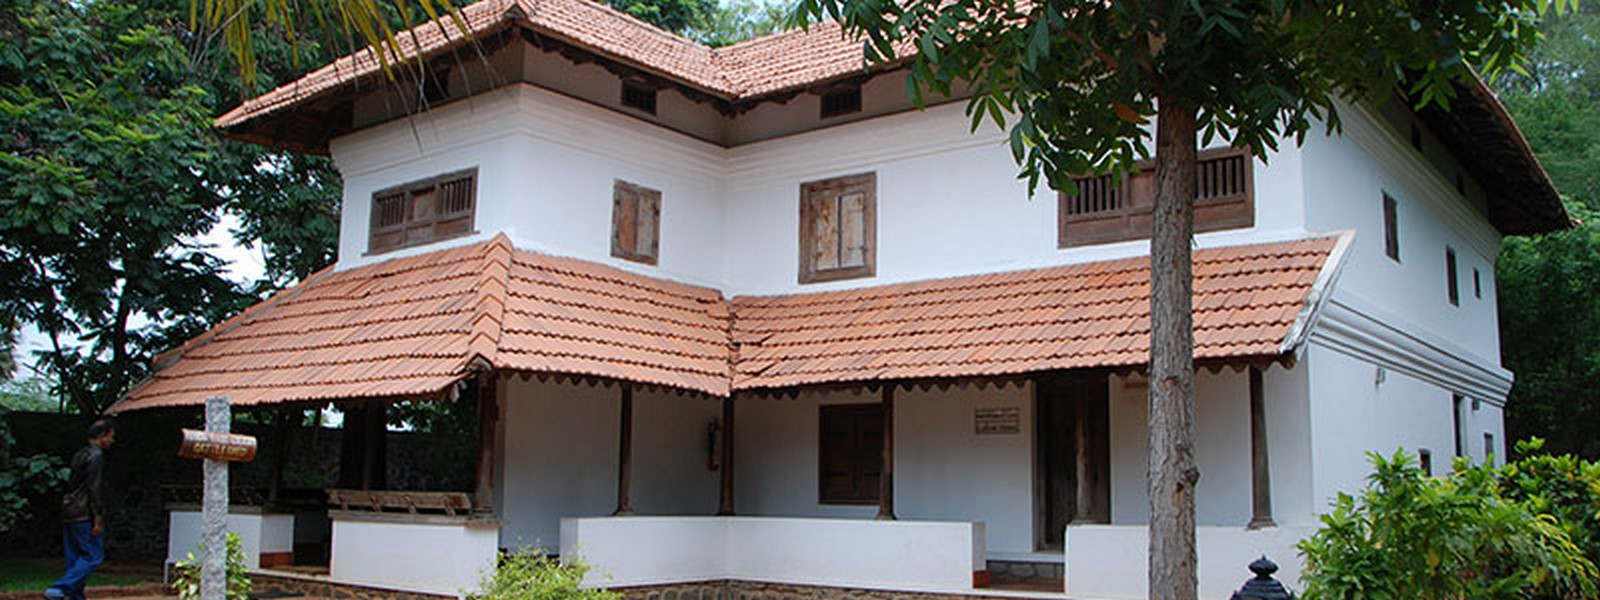 10 Examples of Vernacular architecture in South India - Sheet6